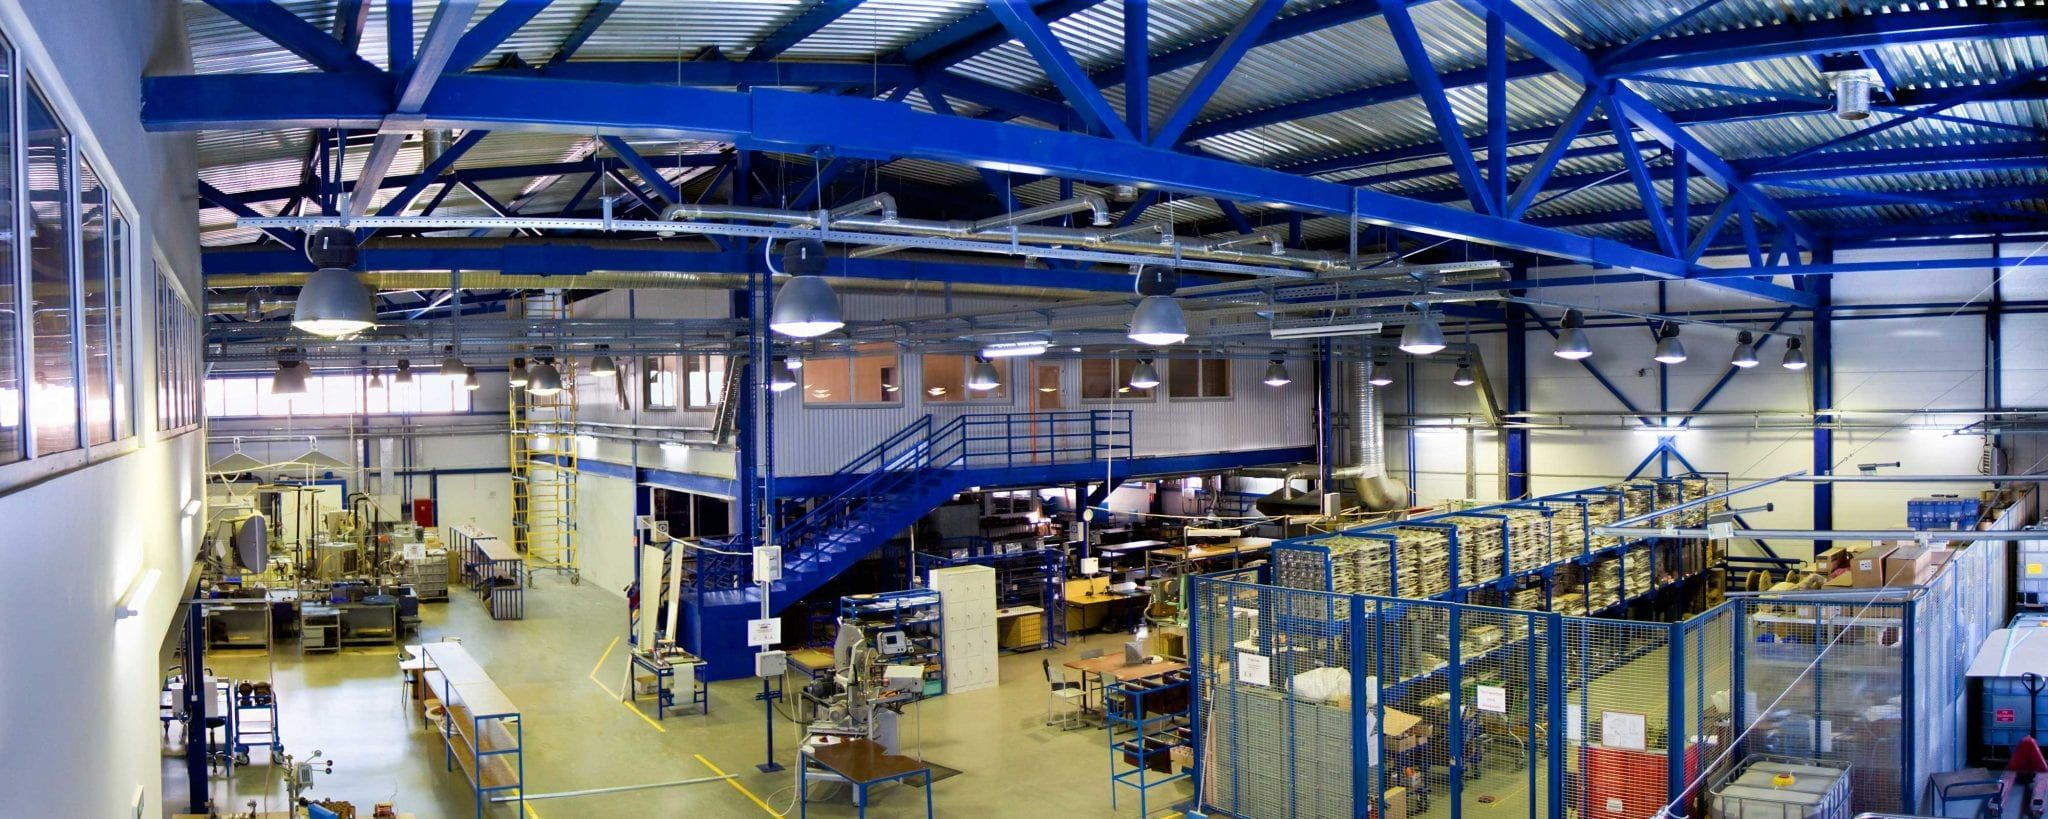 Warehouse for lease with a mezzanine helps maximize space